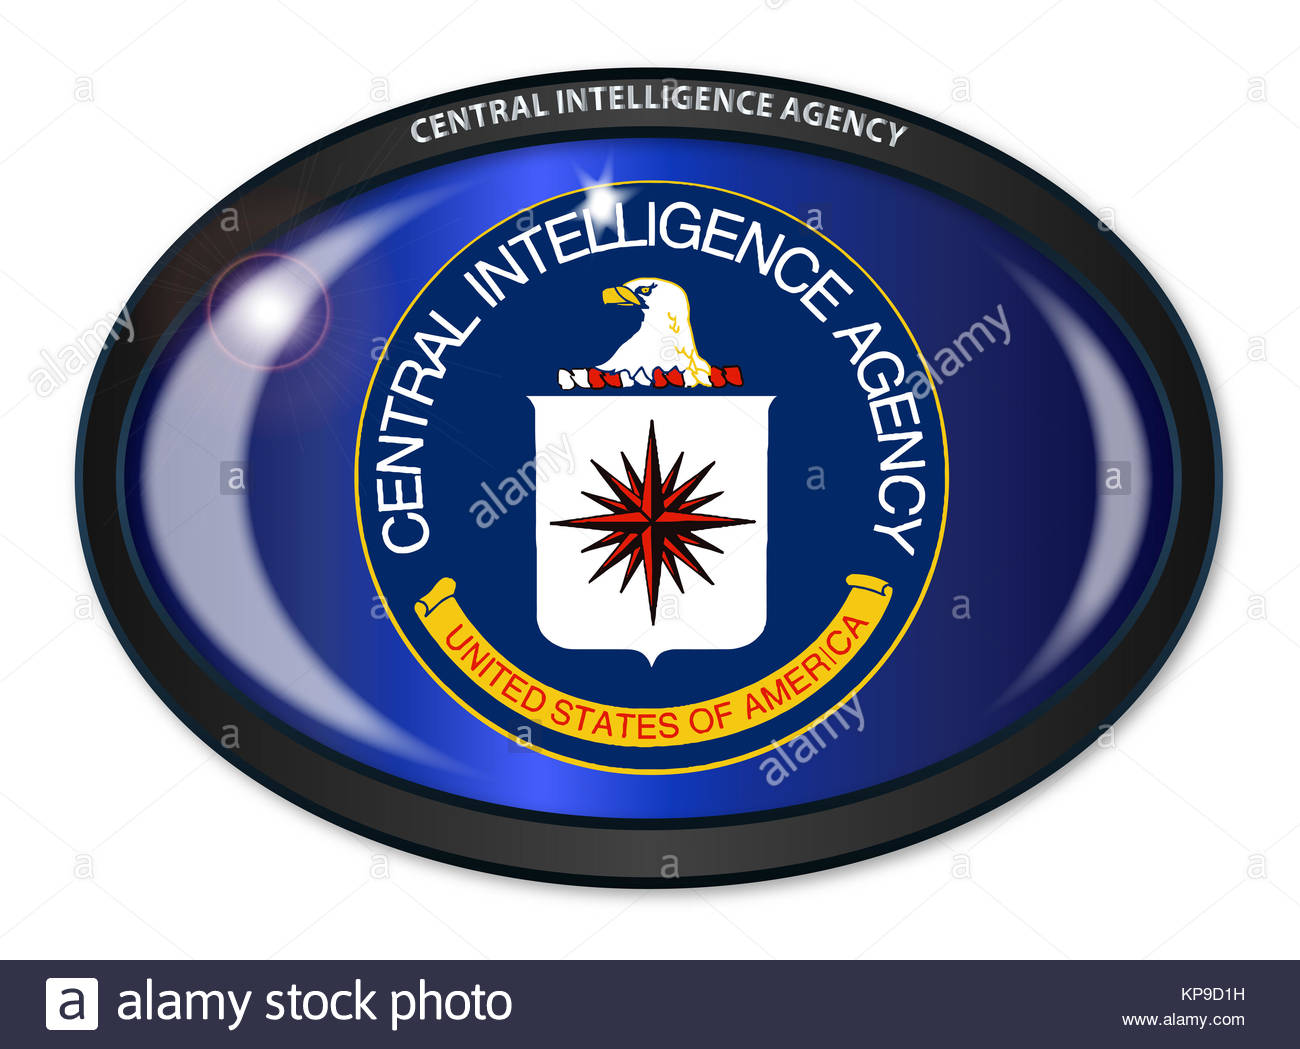 the role of the central intelligence agency in the united states Defense intelligence agency intelligence derived from space is a group of 17 federal intelligence agencies working together to protect the united states of.